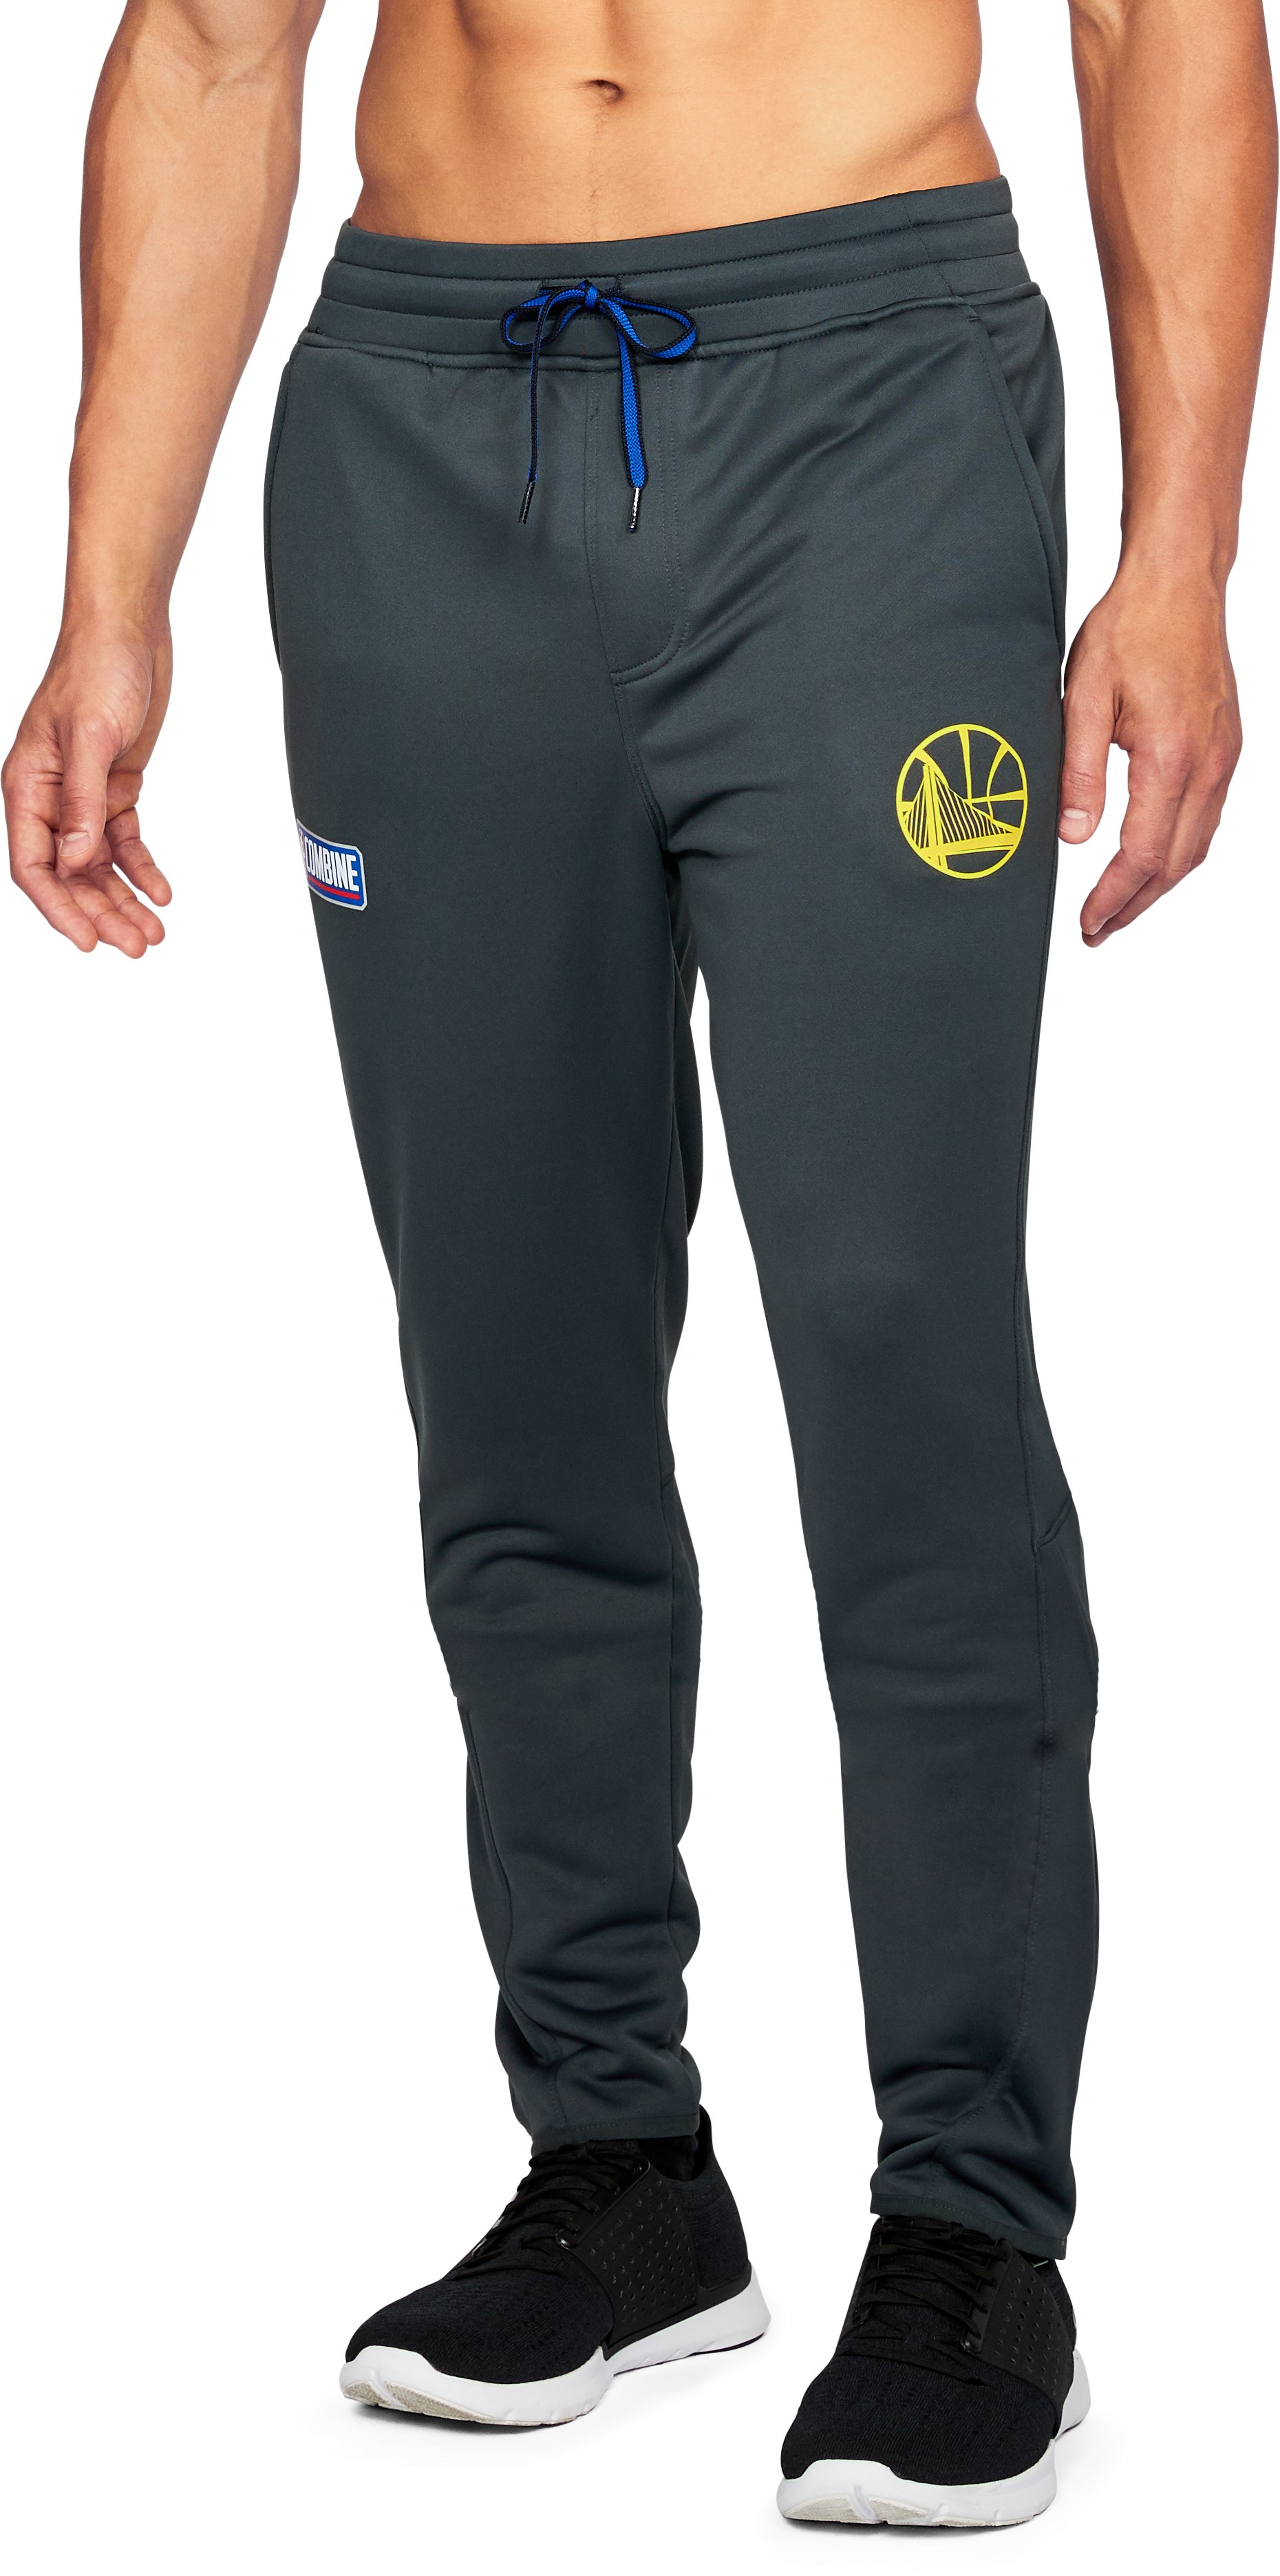 Men's NBA Combine UA Baseline Tapered Pants, NBA_GOLDEN STATE WARRIORS_STEALTH GRAY, zoomed